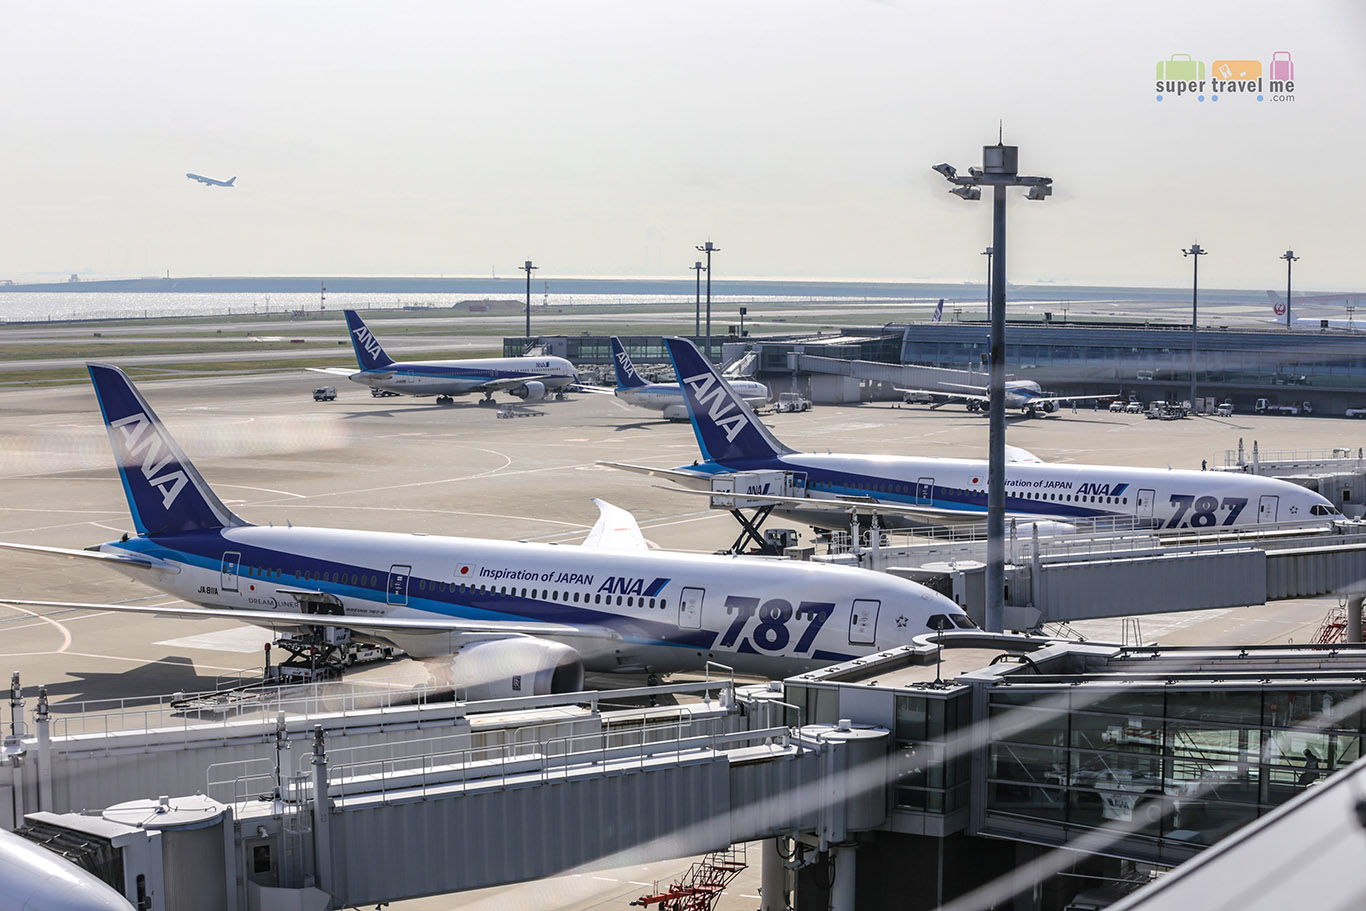 ANA Dreamliners at Haneda Domestic Terminal